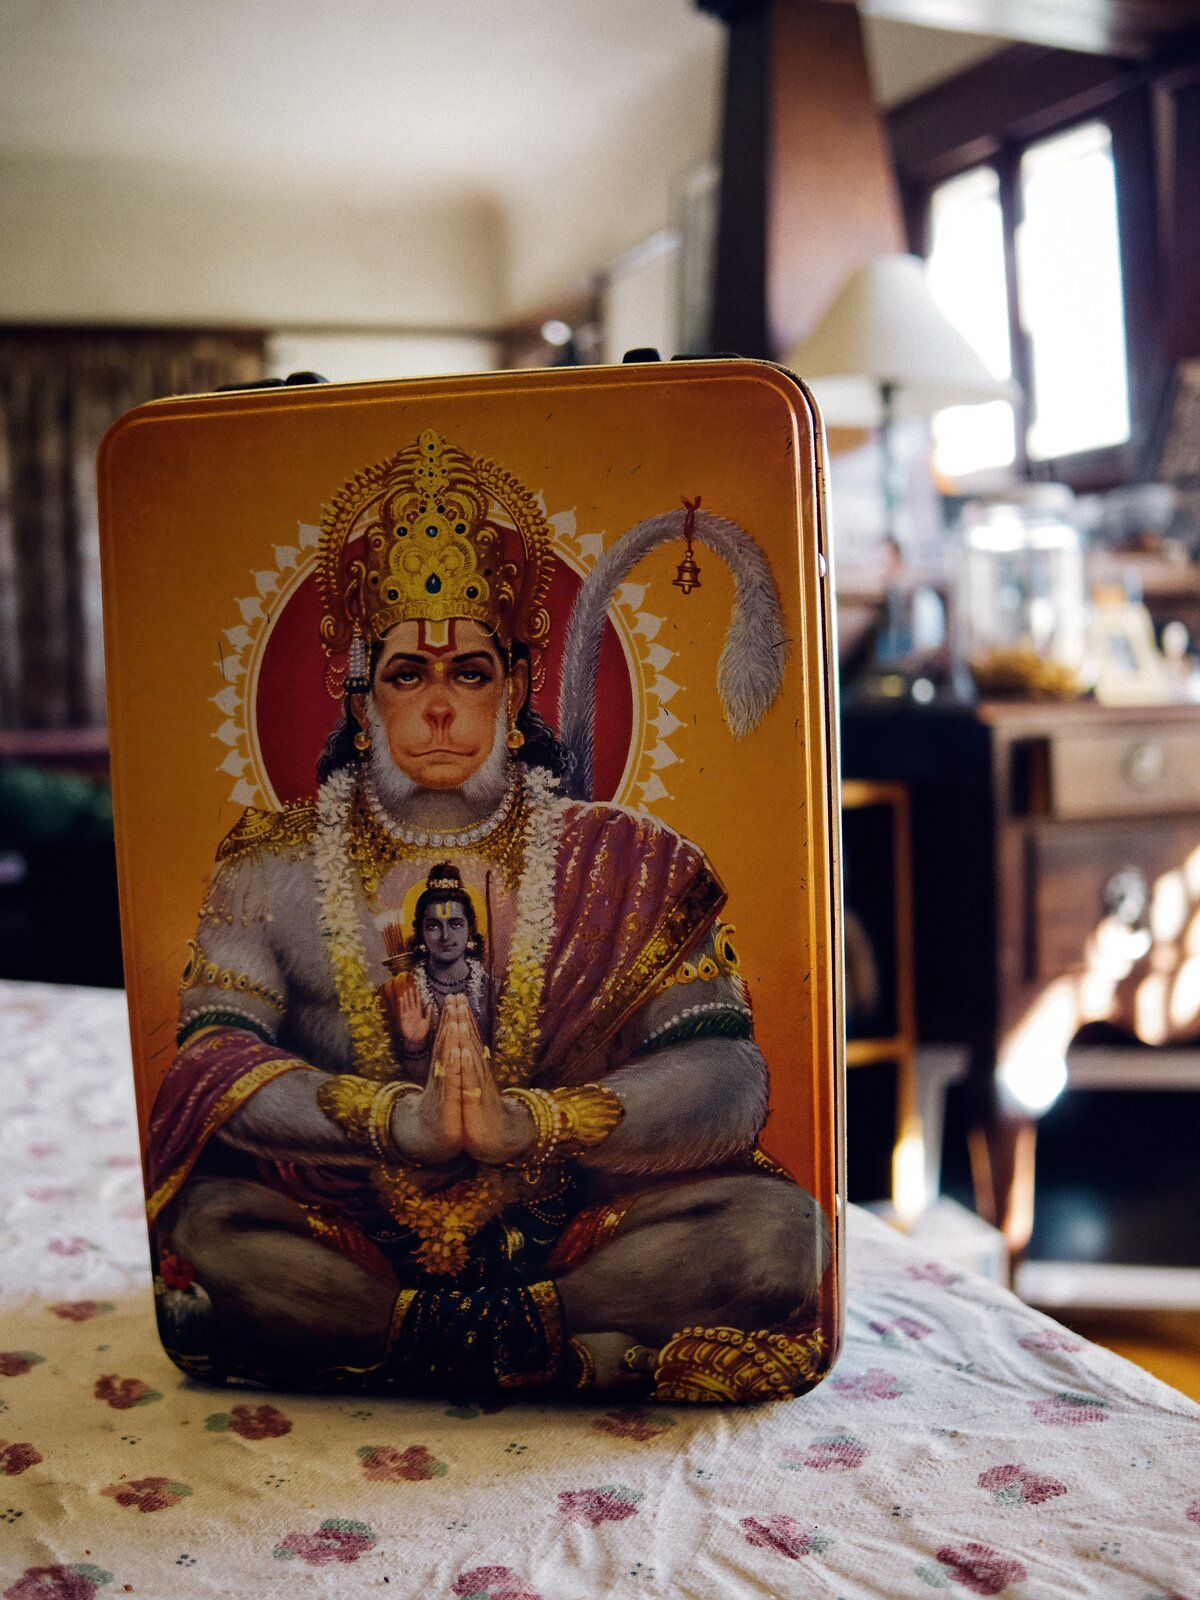 Q7_Mar6_21_Hanuman_lunchbox.jpg